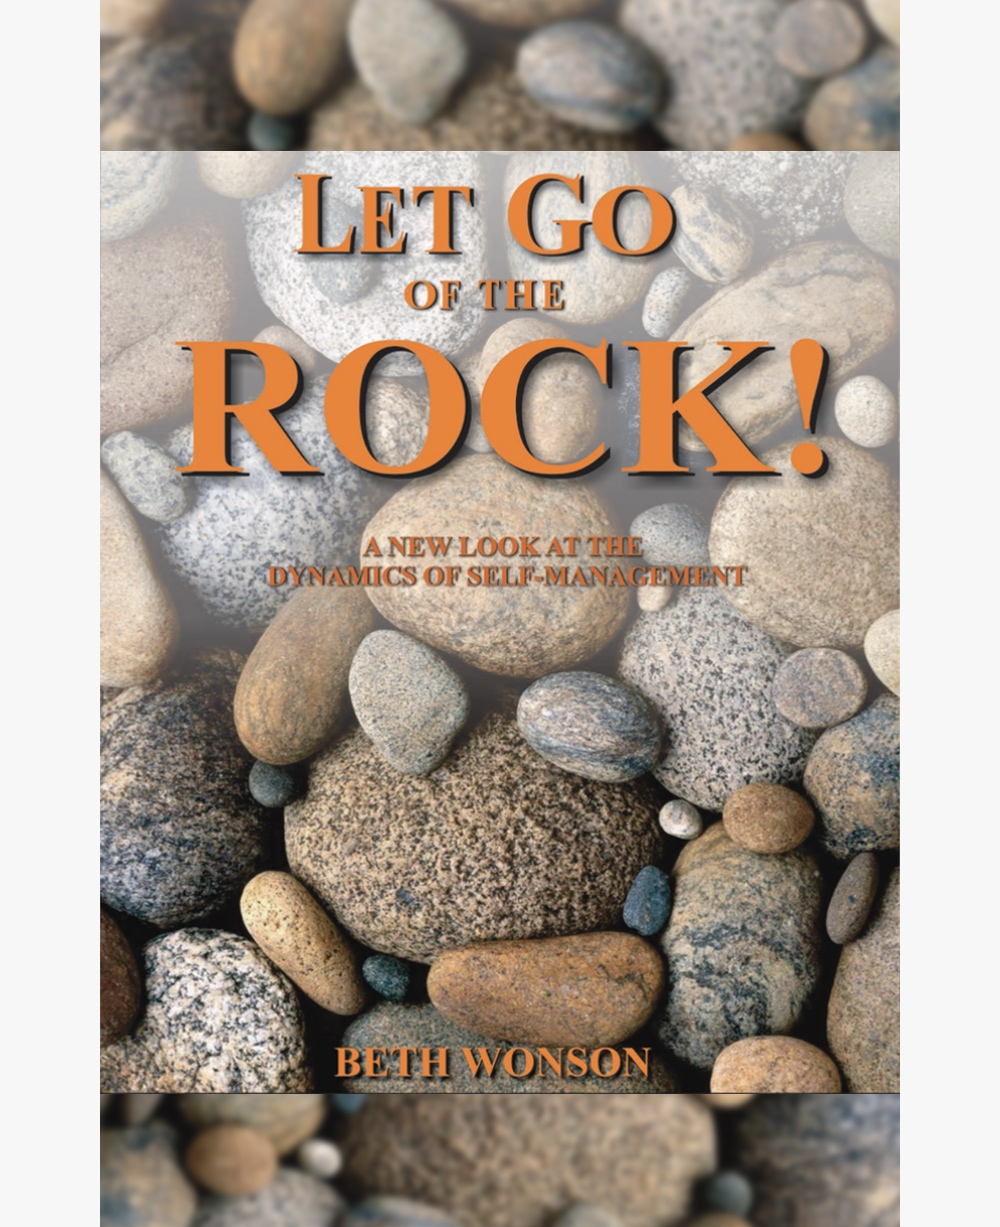 Link to Book in Store - Let Go Of The Rock! is a fun read that will bring you a whole new perspective on the everyday ROCKS that hold you back, decrease your joy, and inhibit peak performance.